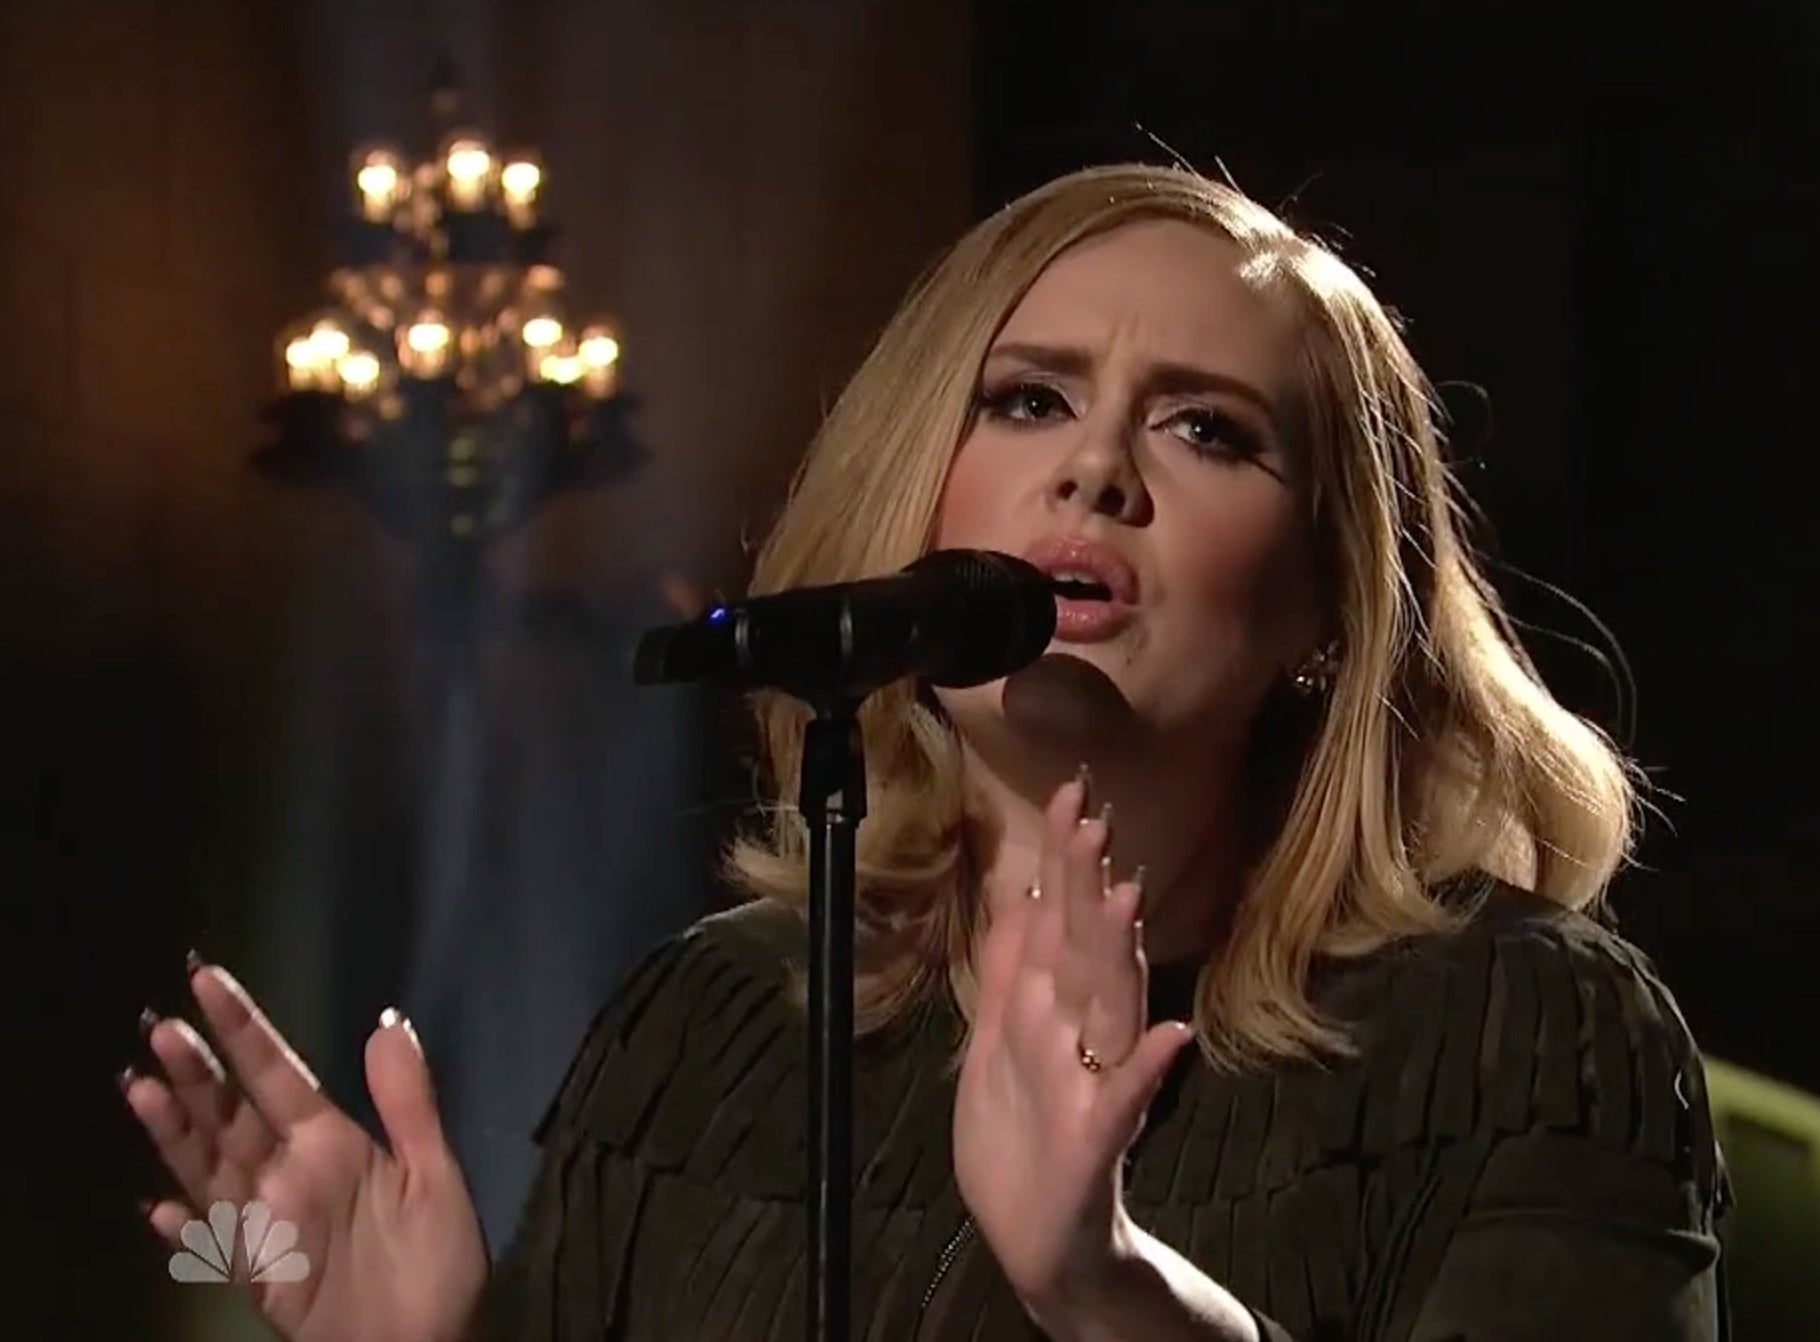 Adele's Raw Mic Feed From Her Performance Of 'Hello' On